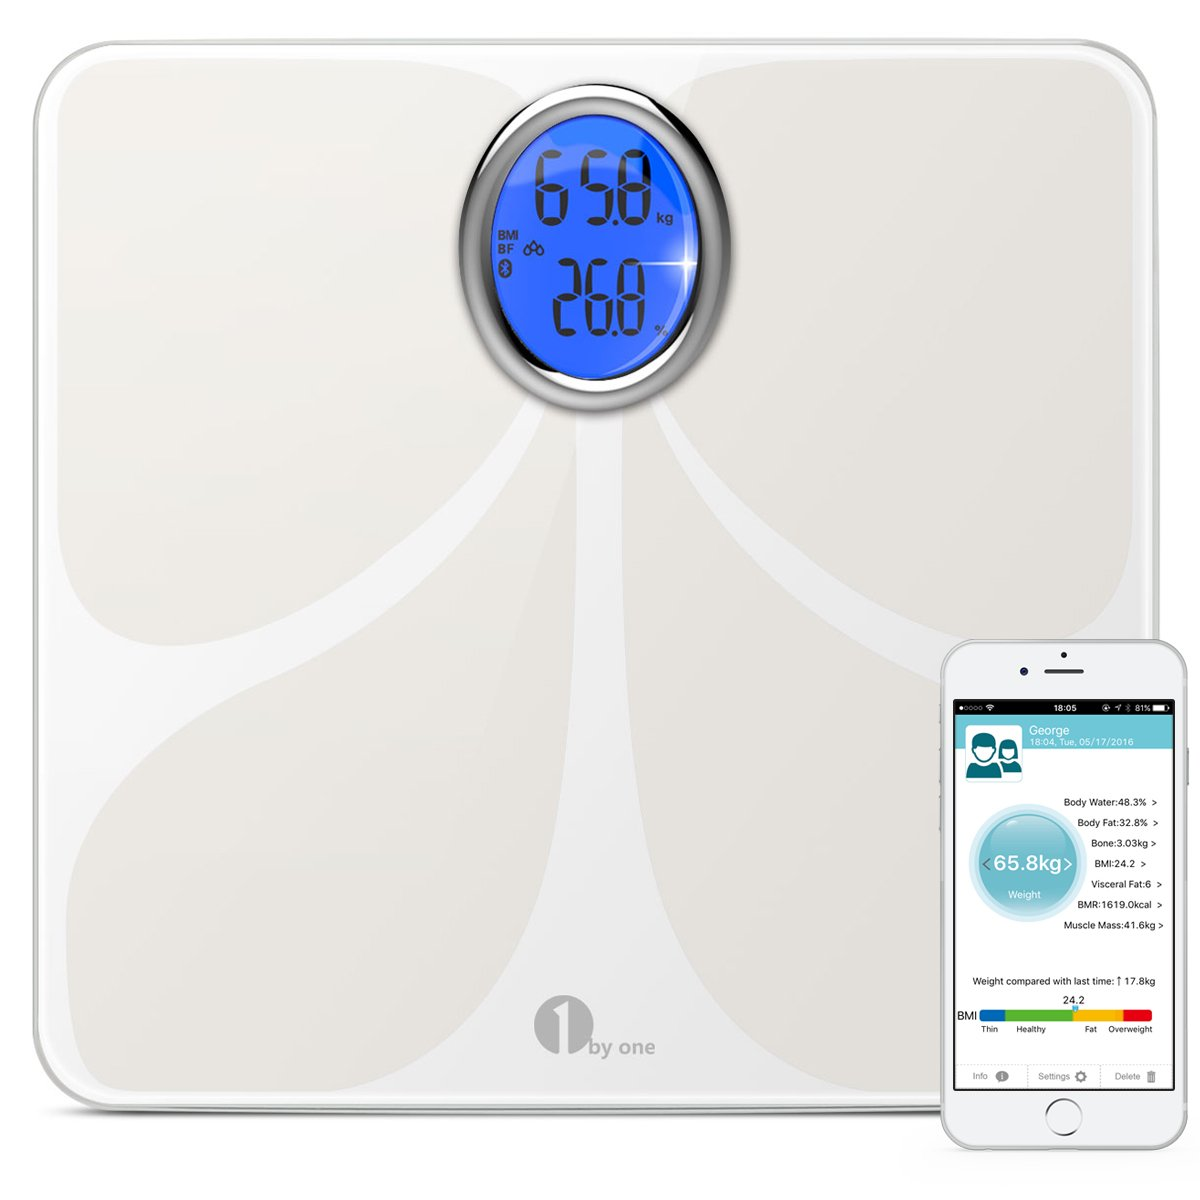 Bathroom scale body fat - Smart Digital Bluetooth Scale Body Fat Scale Body Scale Bathroom Scale With Phone And Tablet App To Manage Your Weight